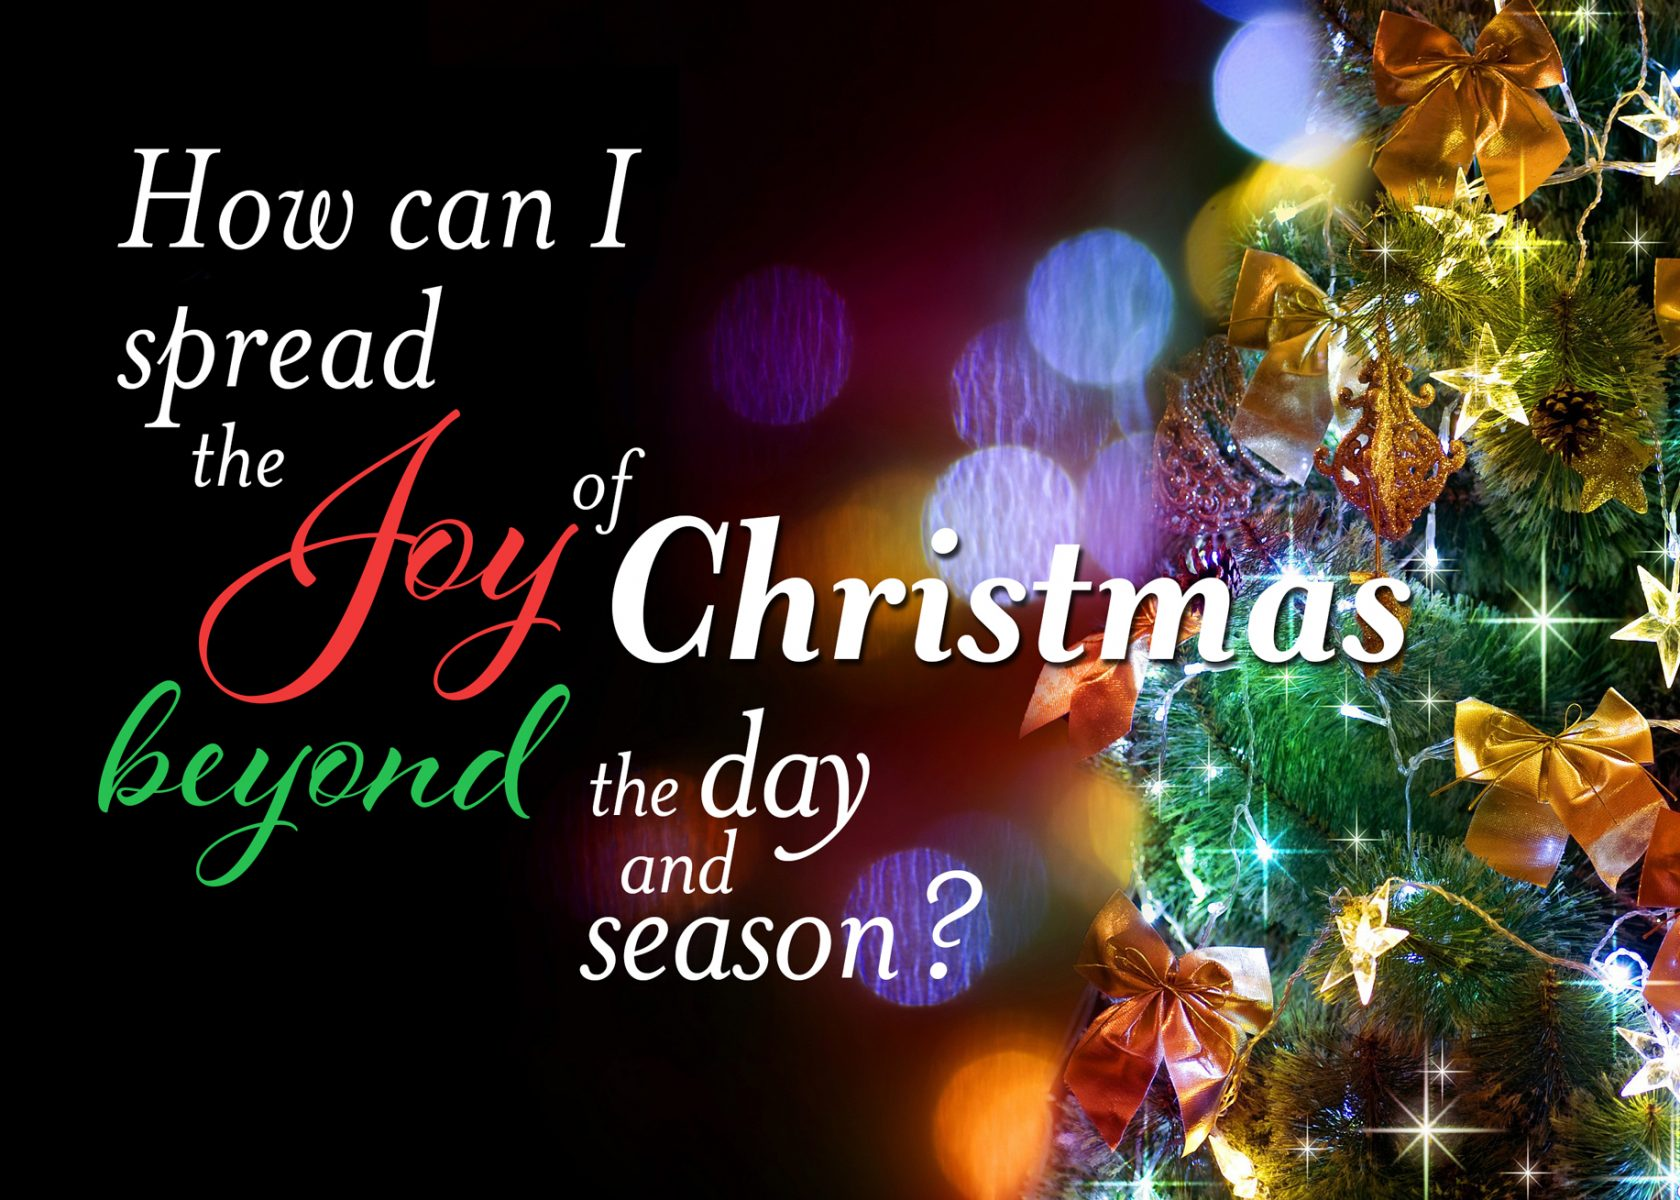 How can I spread the joy of Christmas beyond the day and season?